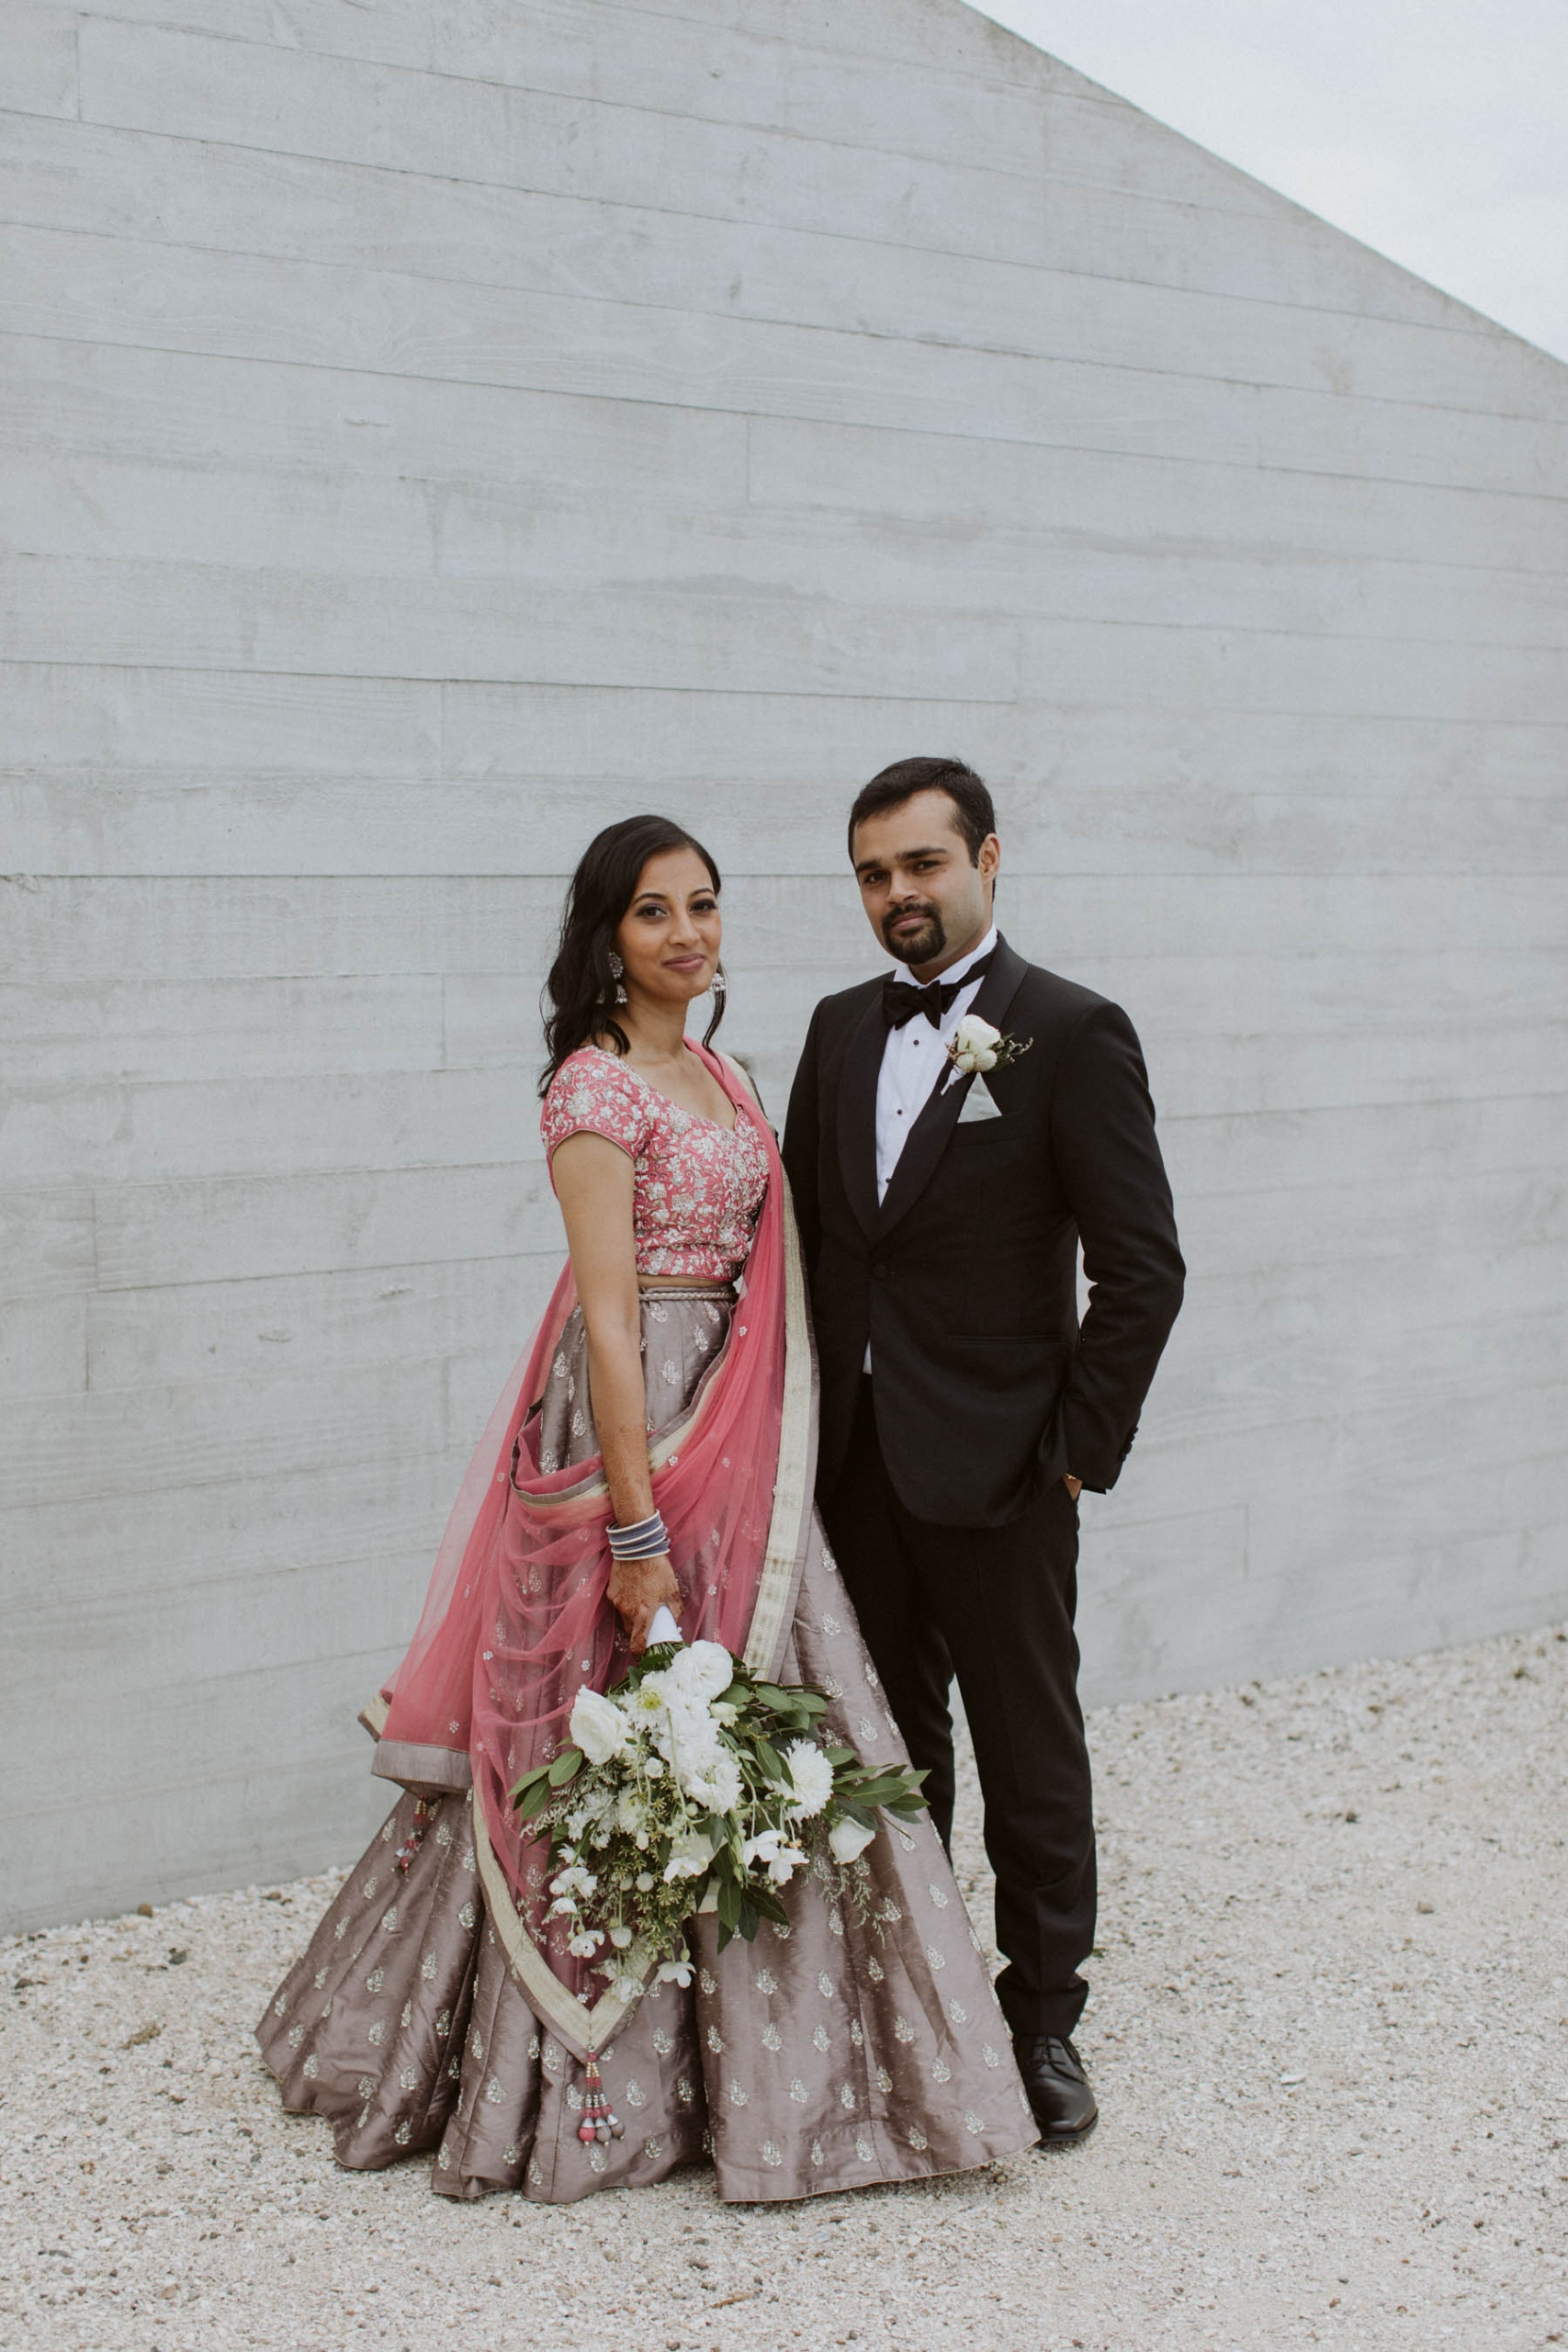 Shilpa and Shakti at their wedding in Auckland, New Zealand.